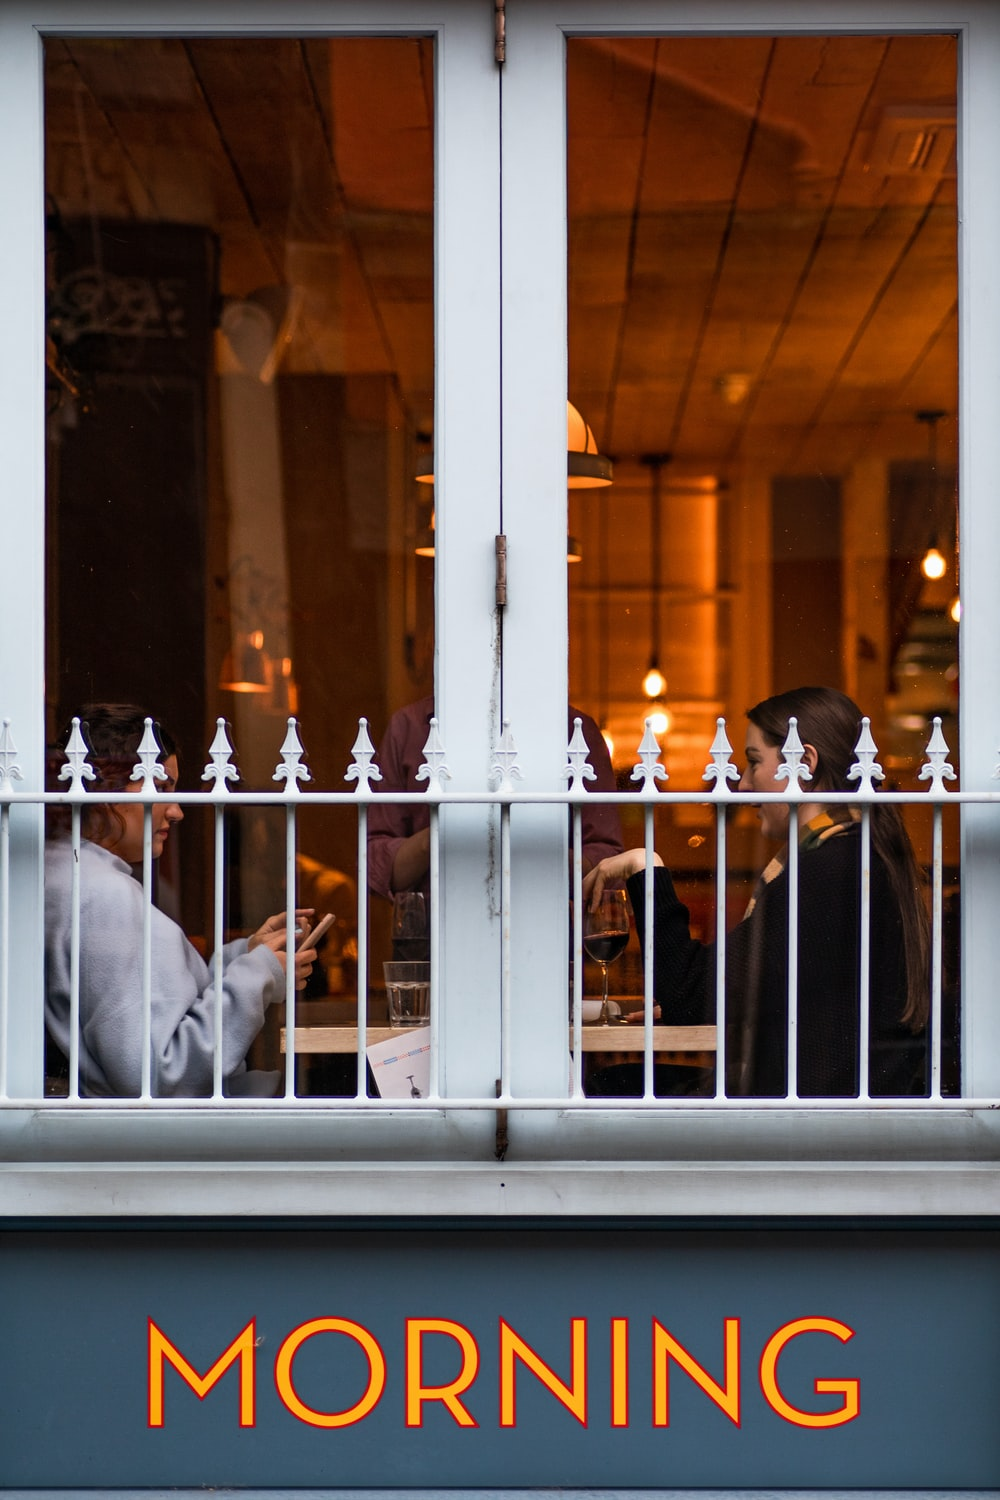 man in white dress shirt standing in front of glass window